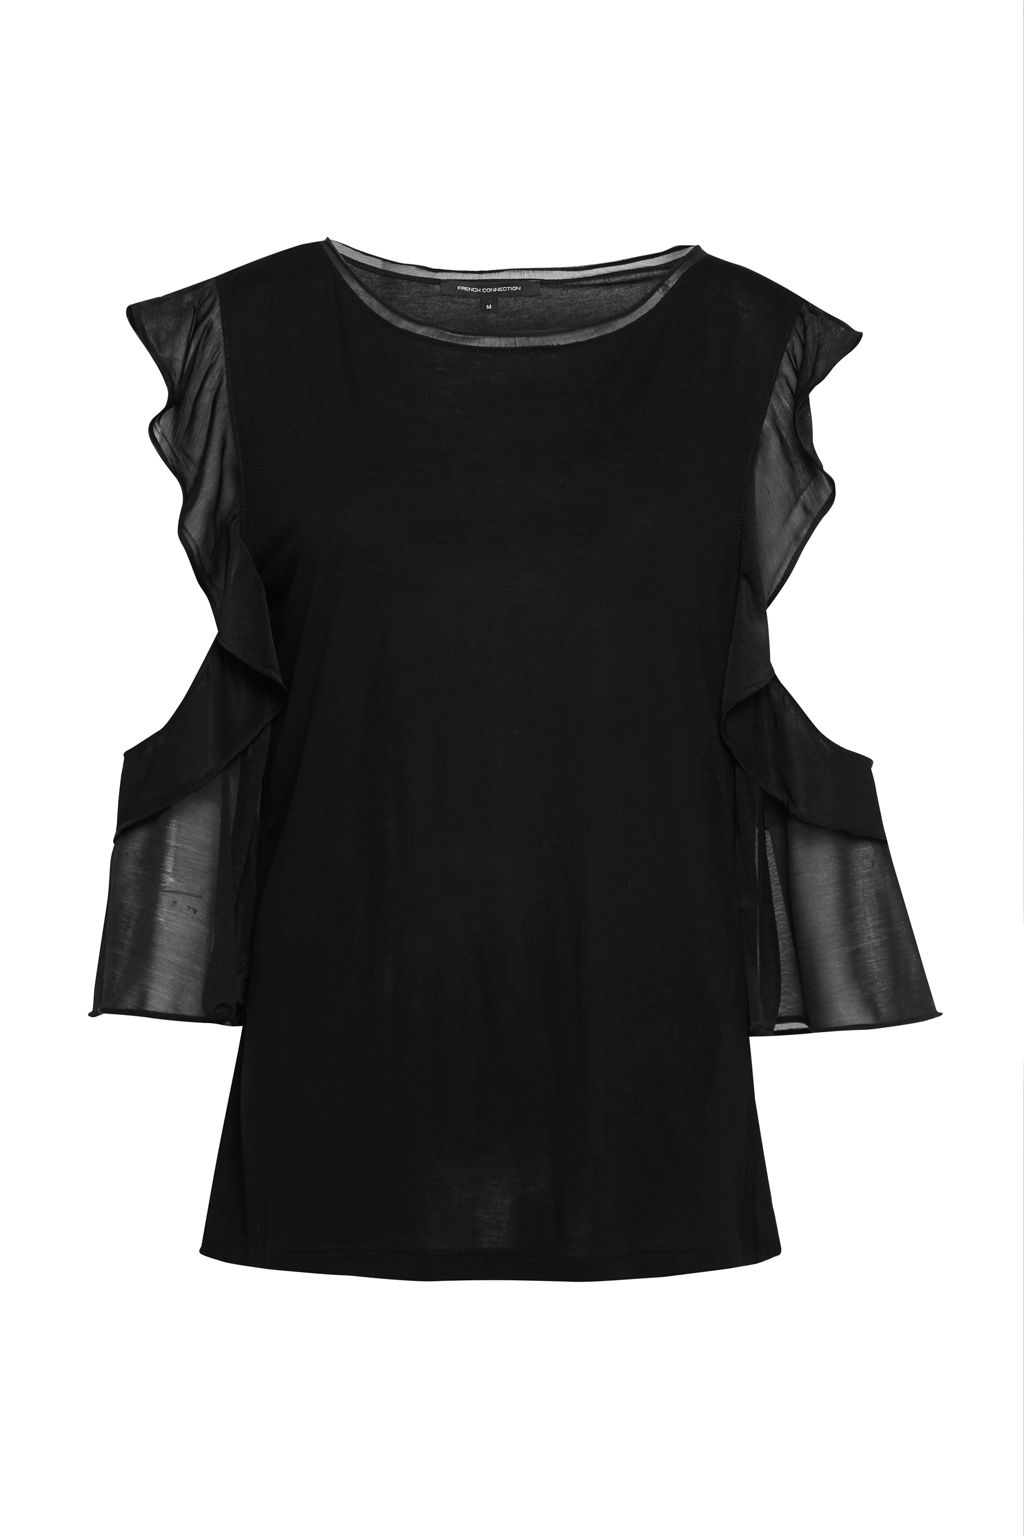 French Connection Ruffle Mix Jersey Top, Black